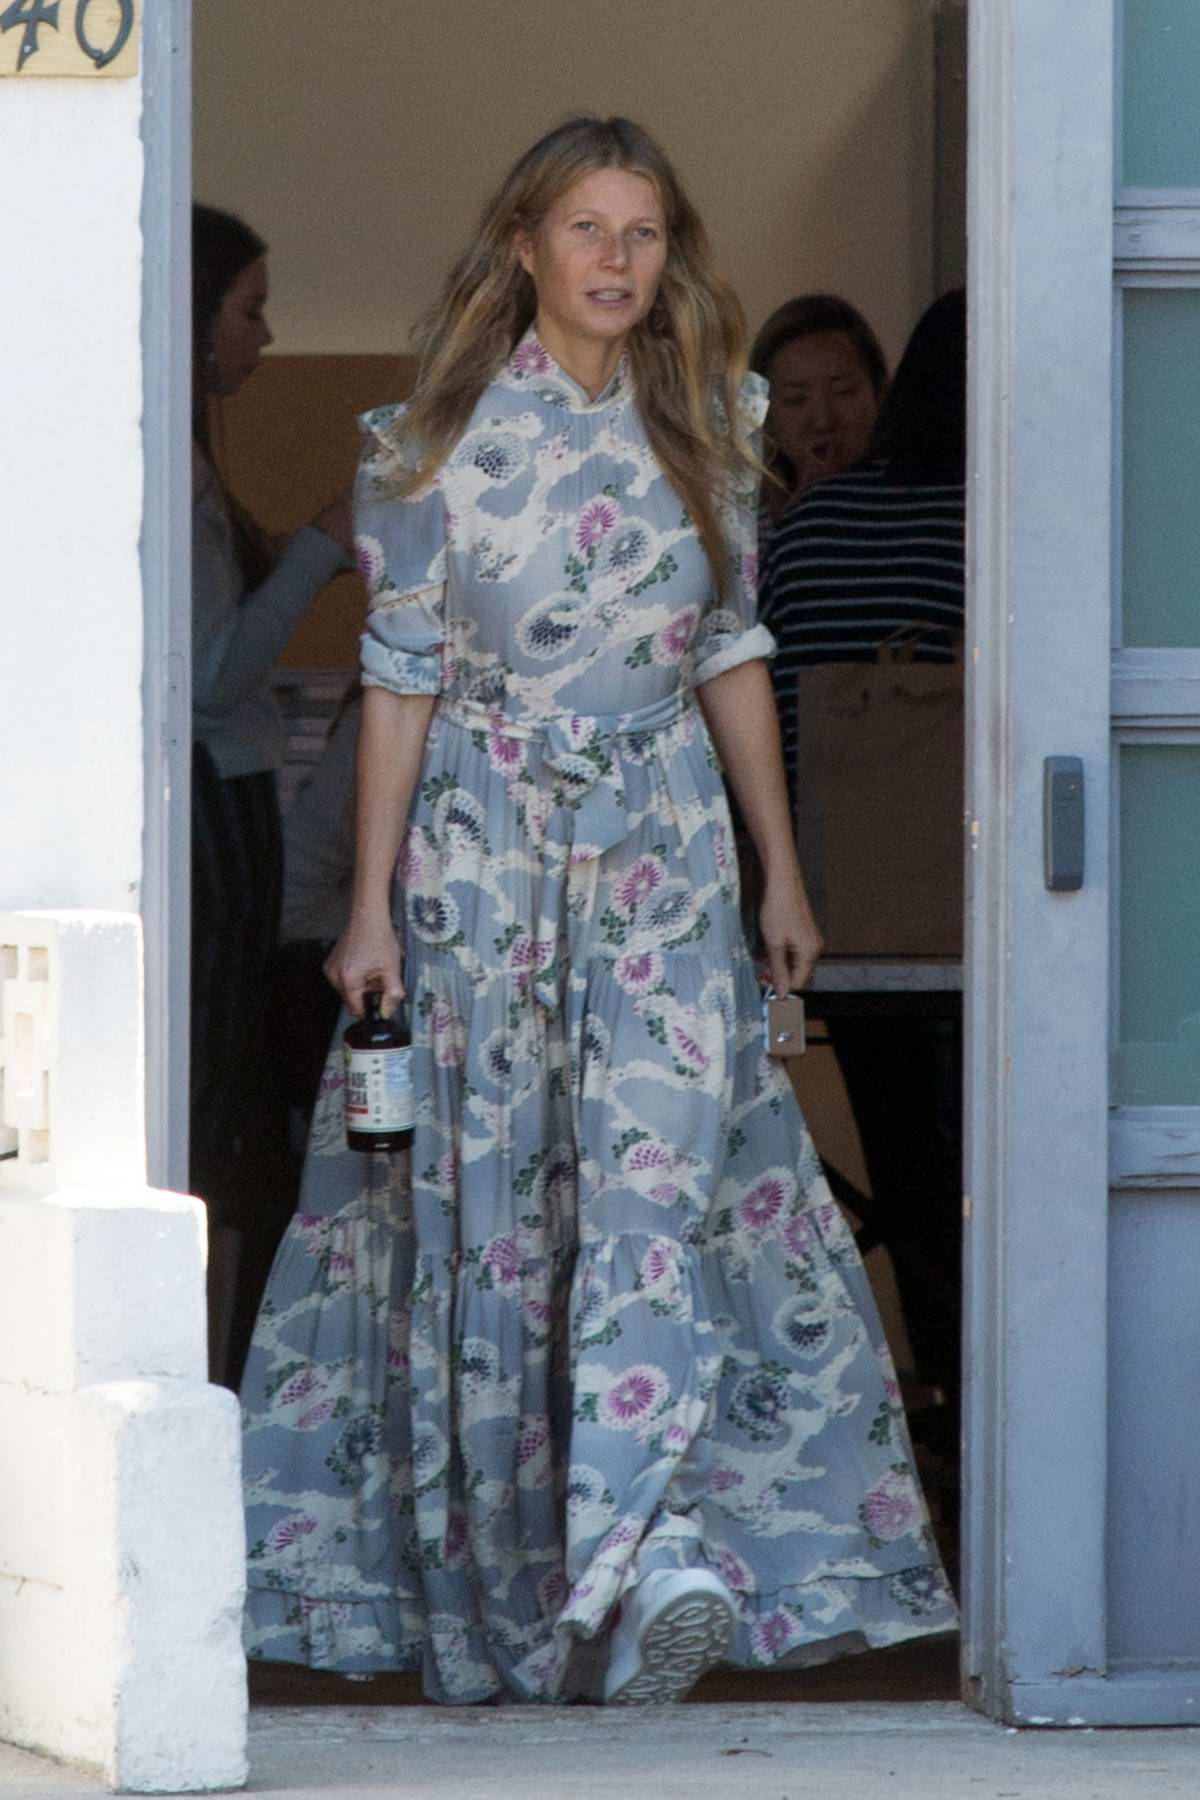 Gwyneth Paltrow steps out in a grey floral dress to grab a Kombucha in Los Angeles